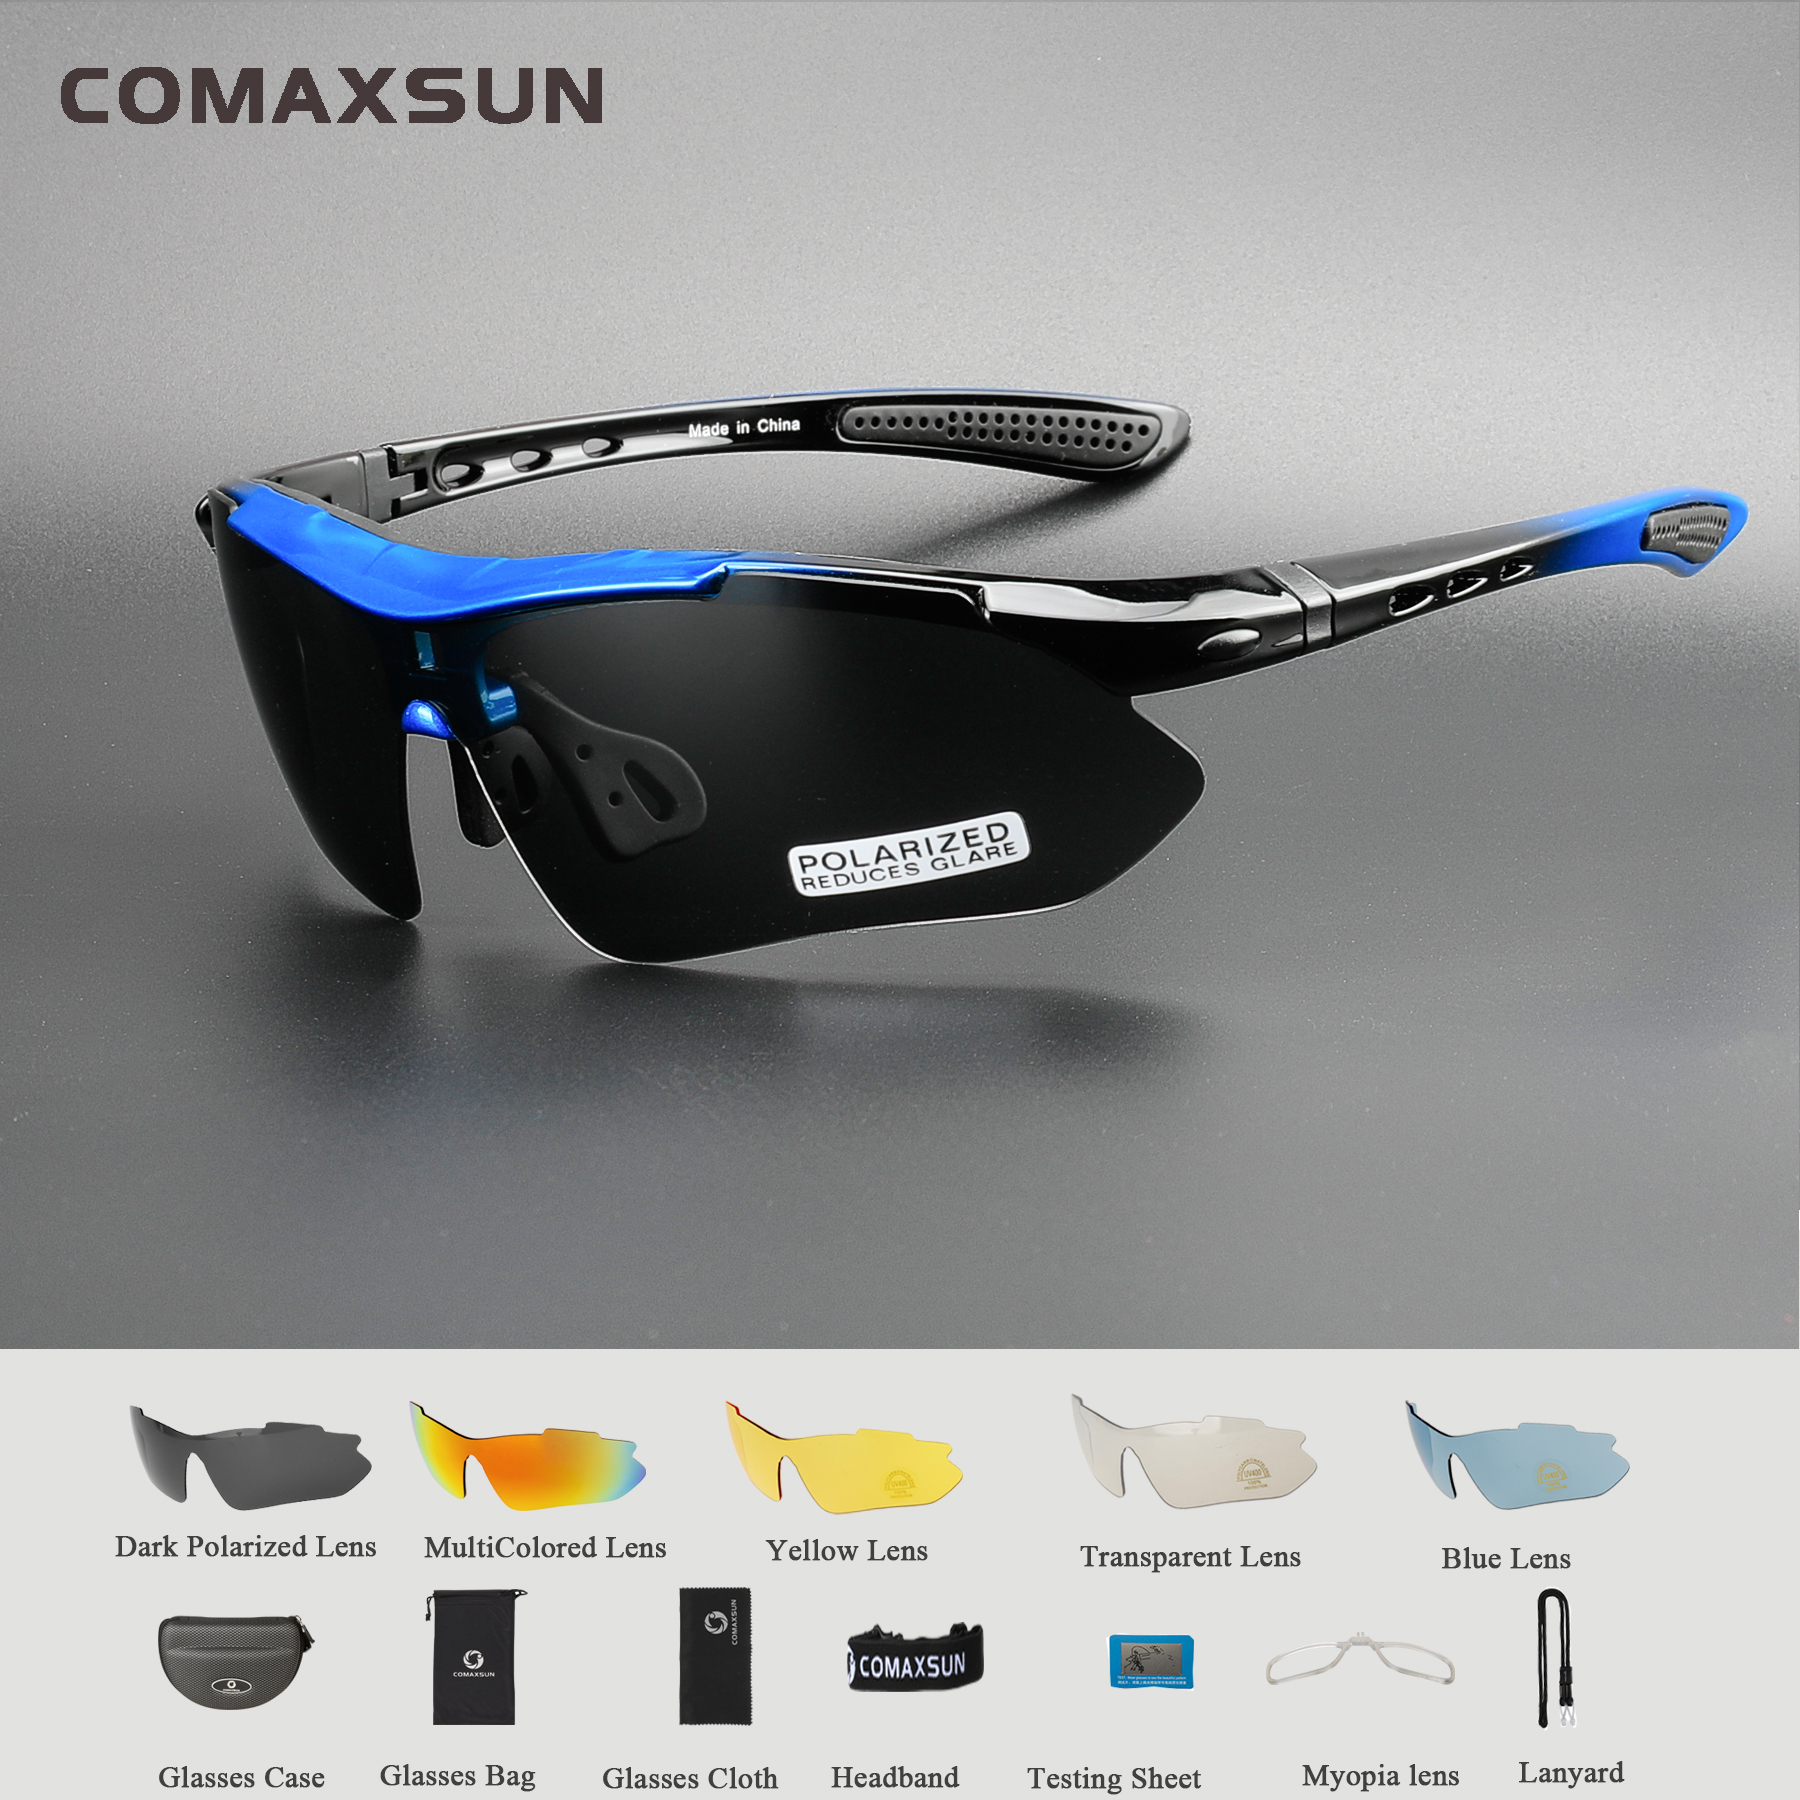 COMAXSUN-Professional-Polarized-Cycling-Glasses-Bike-Goggles-Outdoor-Sports-Bicycle-Sunglasses-UV-400-With-5-Lens